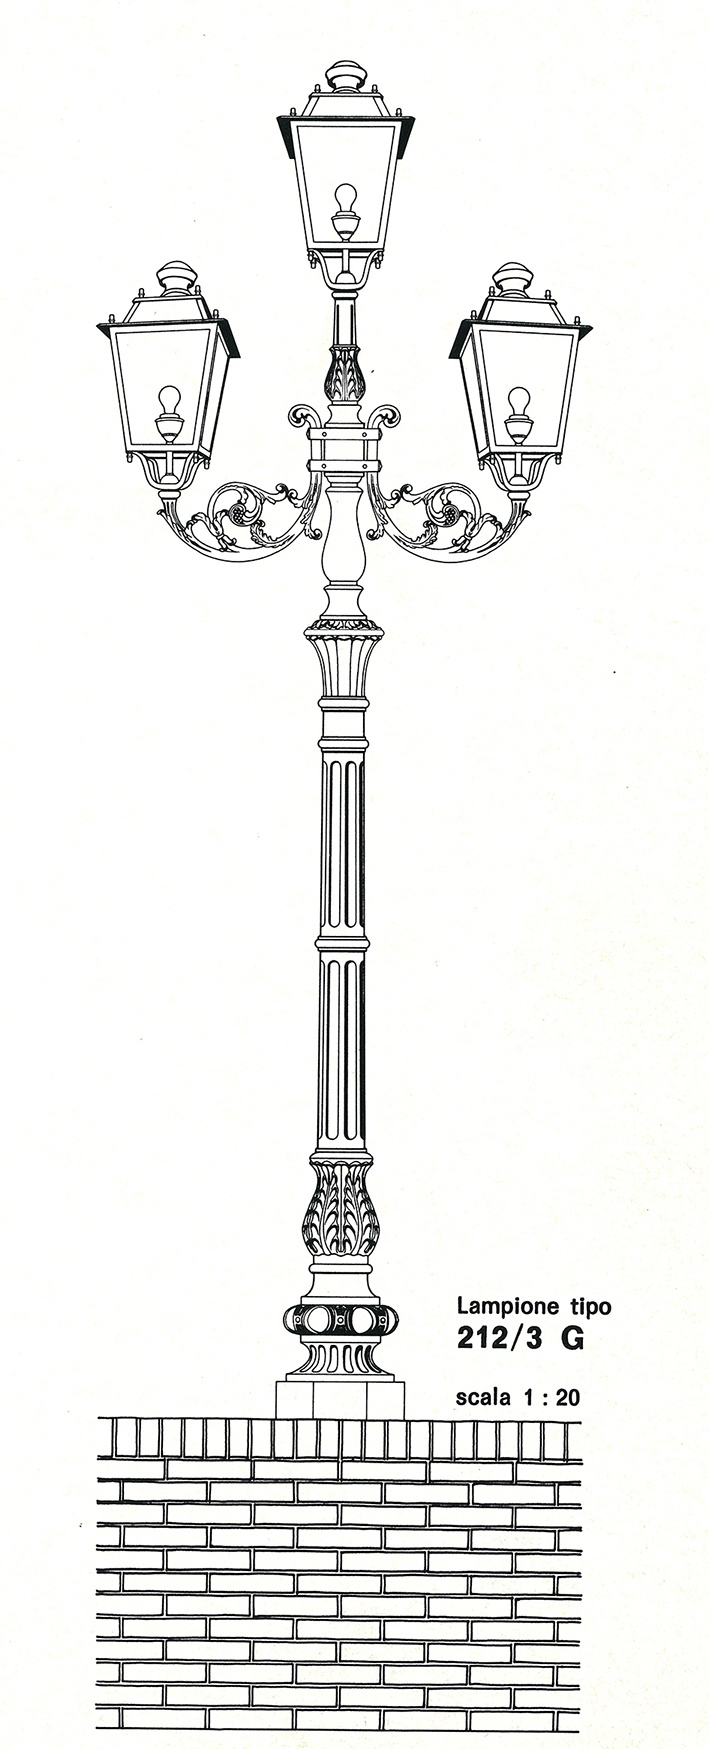 The first set of cast-iron luniraires for town centres, designed by Domenico Neri.